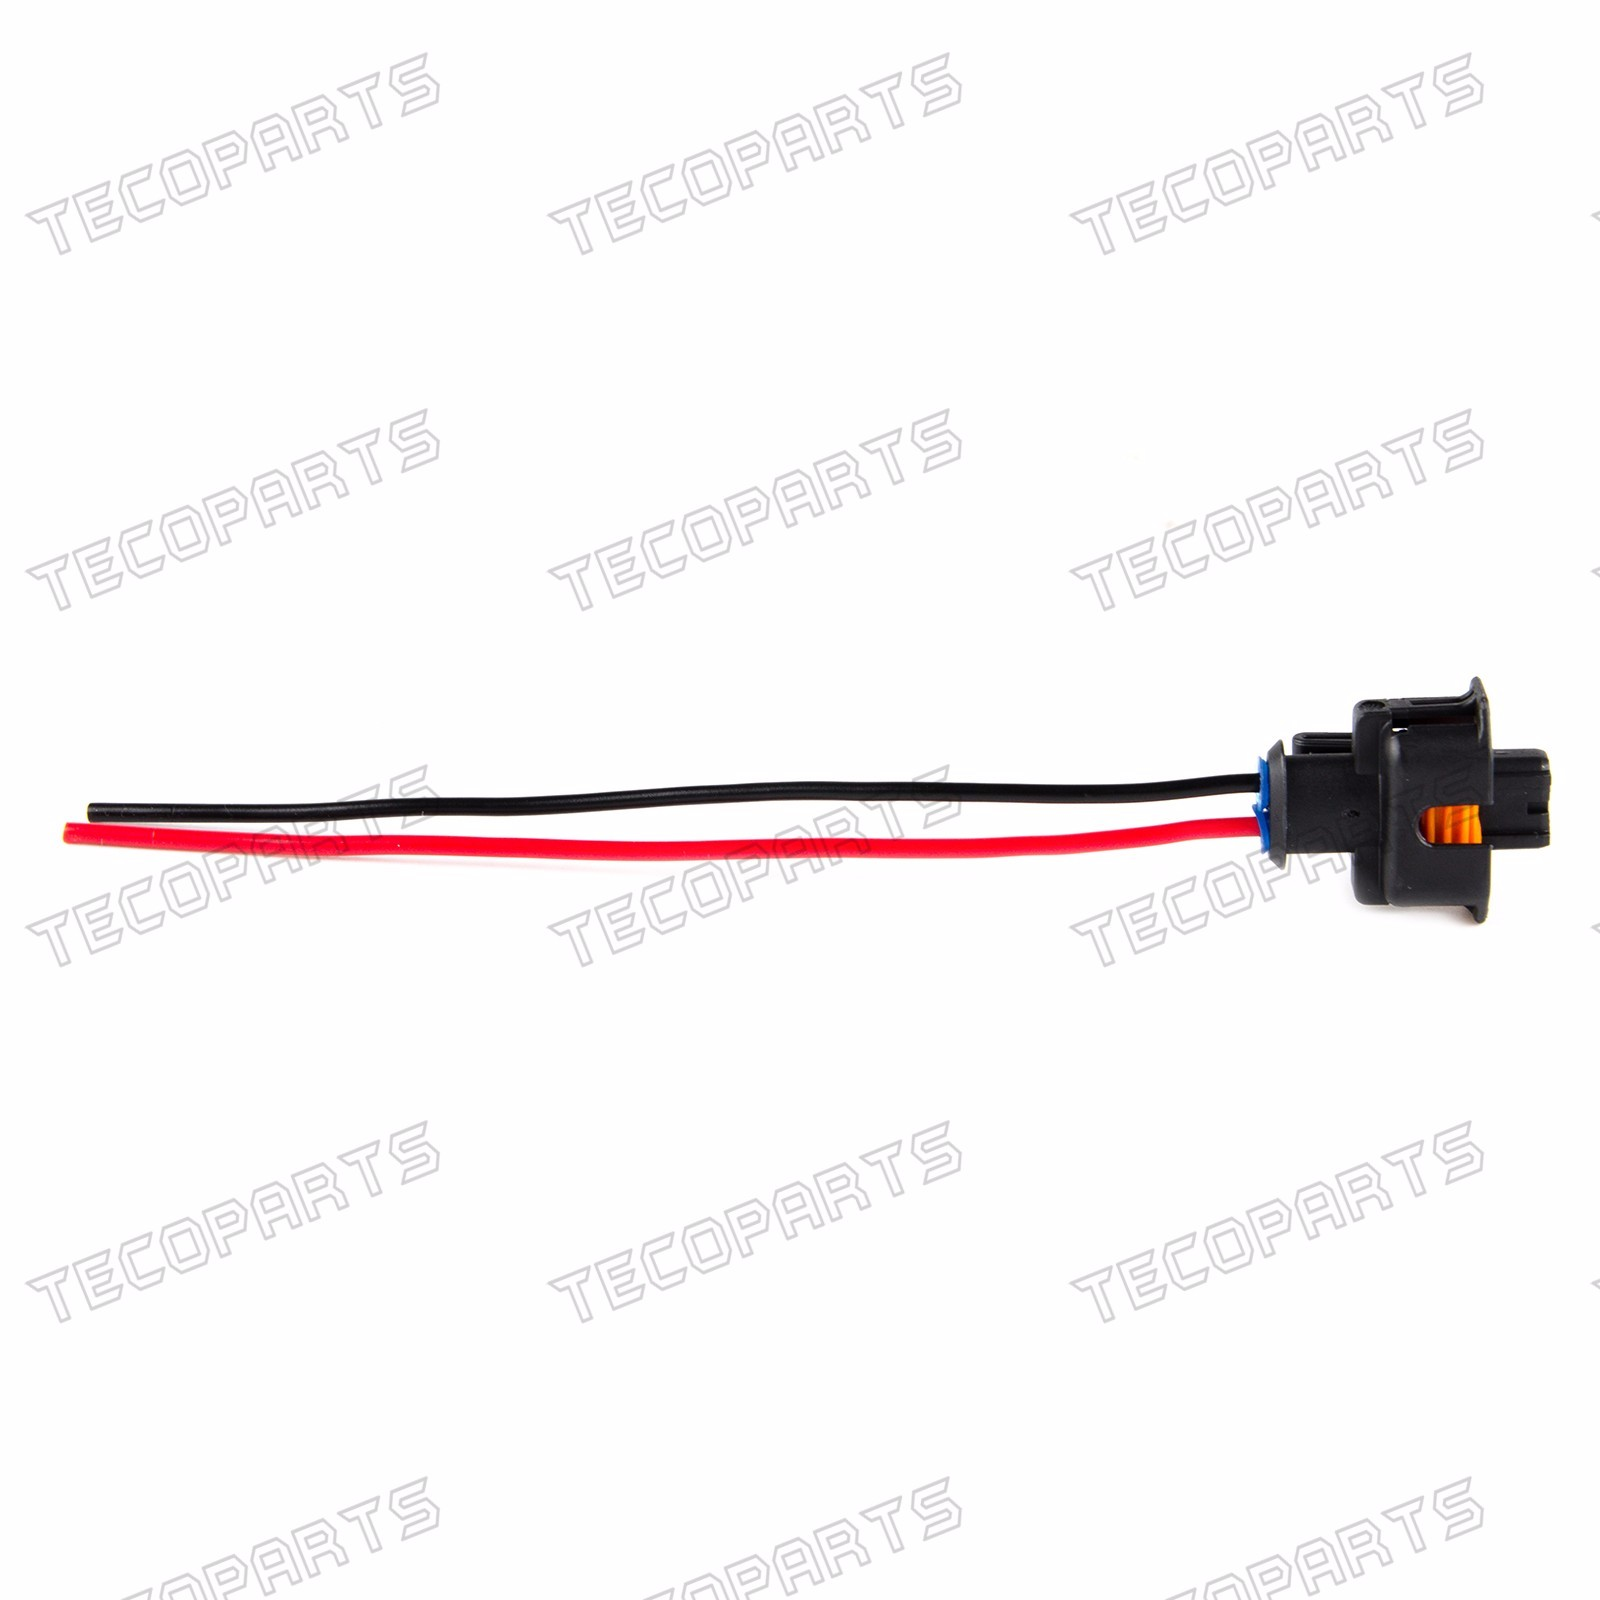 Diesel Fuel Injector Wiring Loom Plug Connector For Vauxhall Zafira Harness 19 Cdti